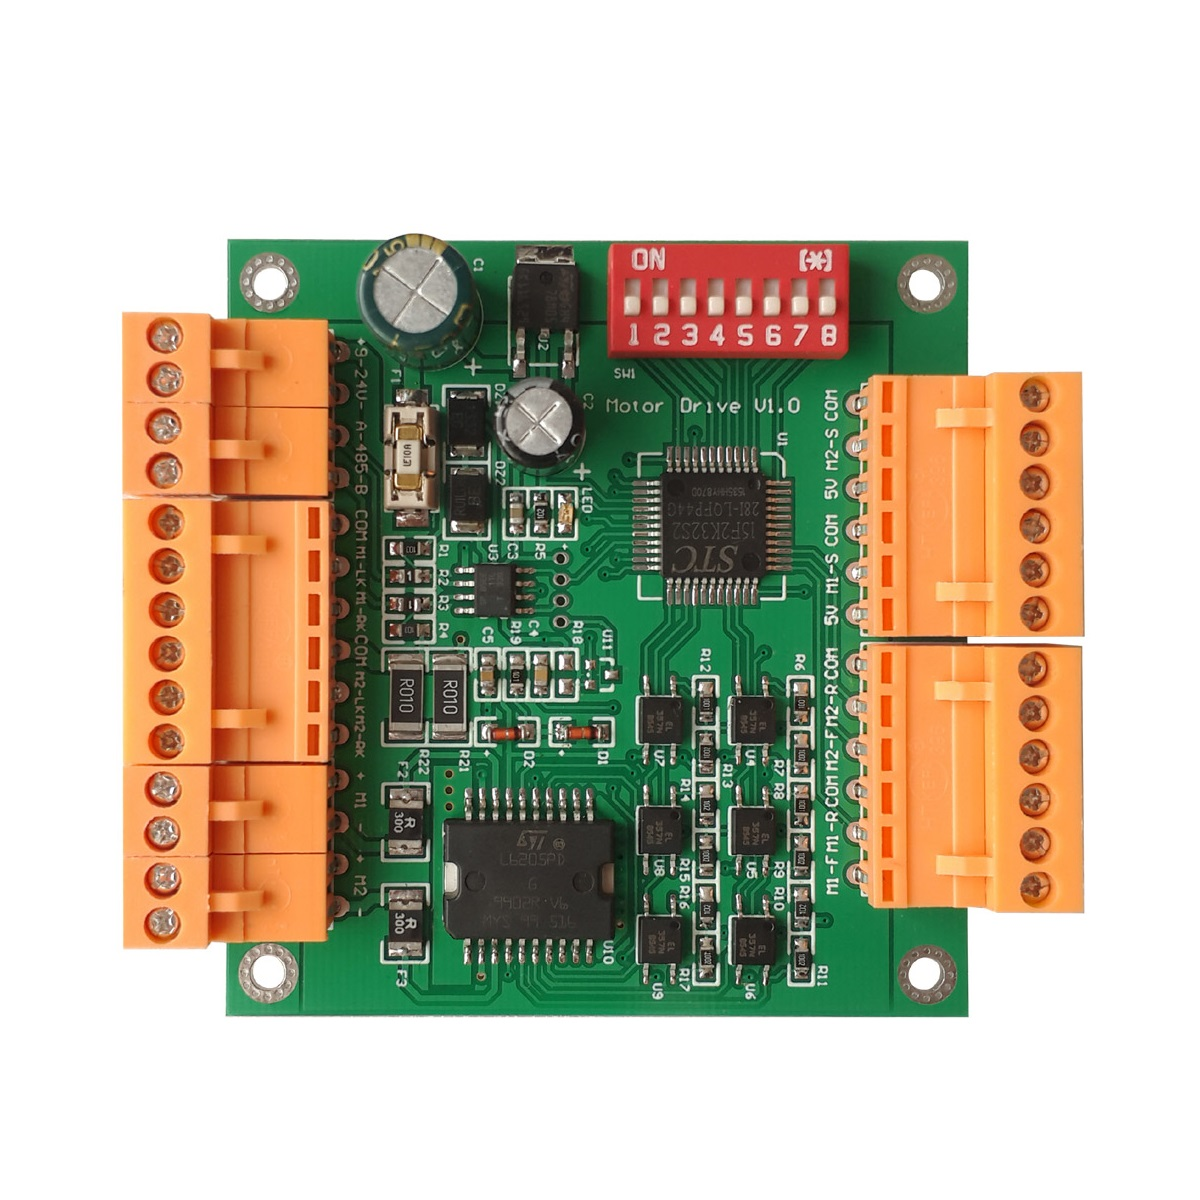 12v 4 Channel Audio Decoding Relay Dtmf Intelligent Home Switch This Decoder Uses A G8870 Receiver Chip To Decode Rs485 Pelco Protocol Control Dc Motor Controller Module